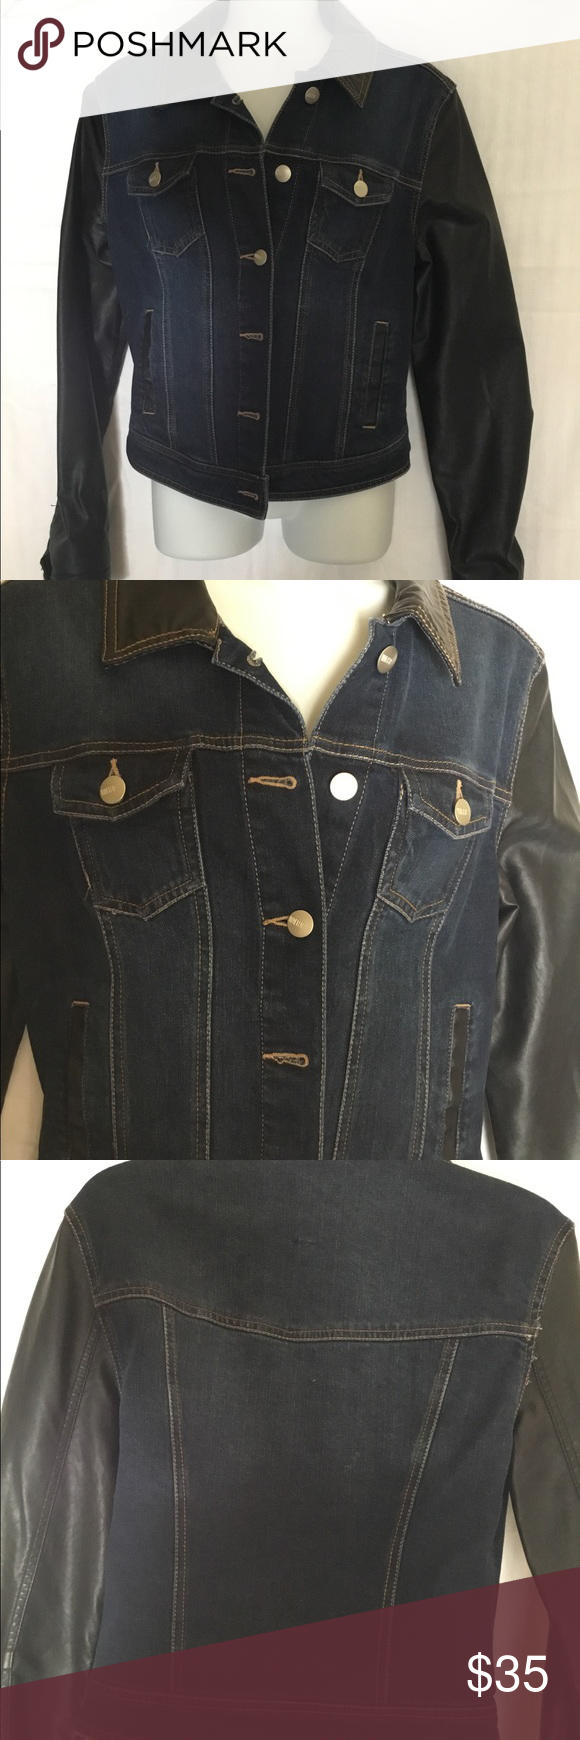 Denim and faux leather jacket, size Small Denim and faux